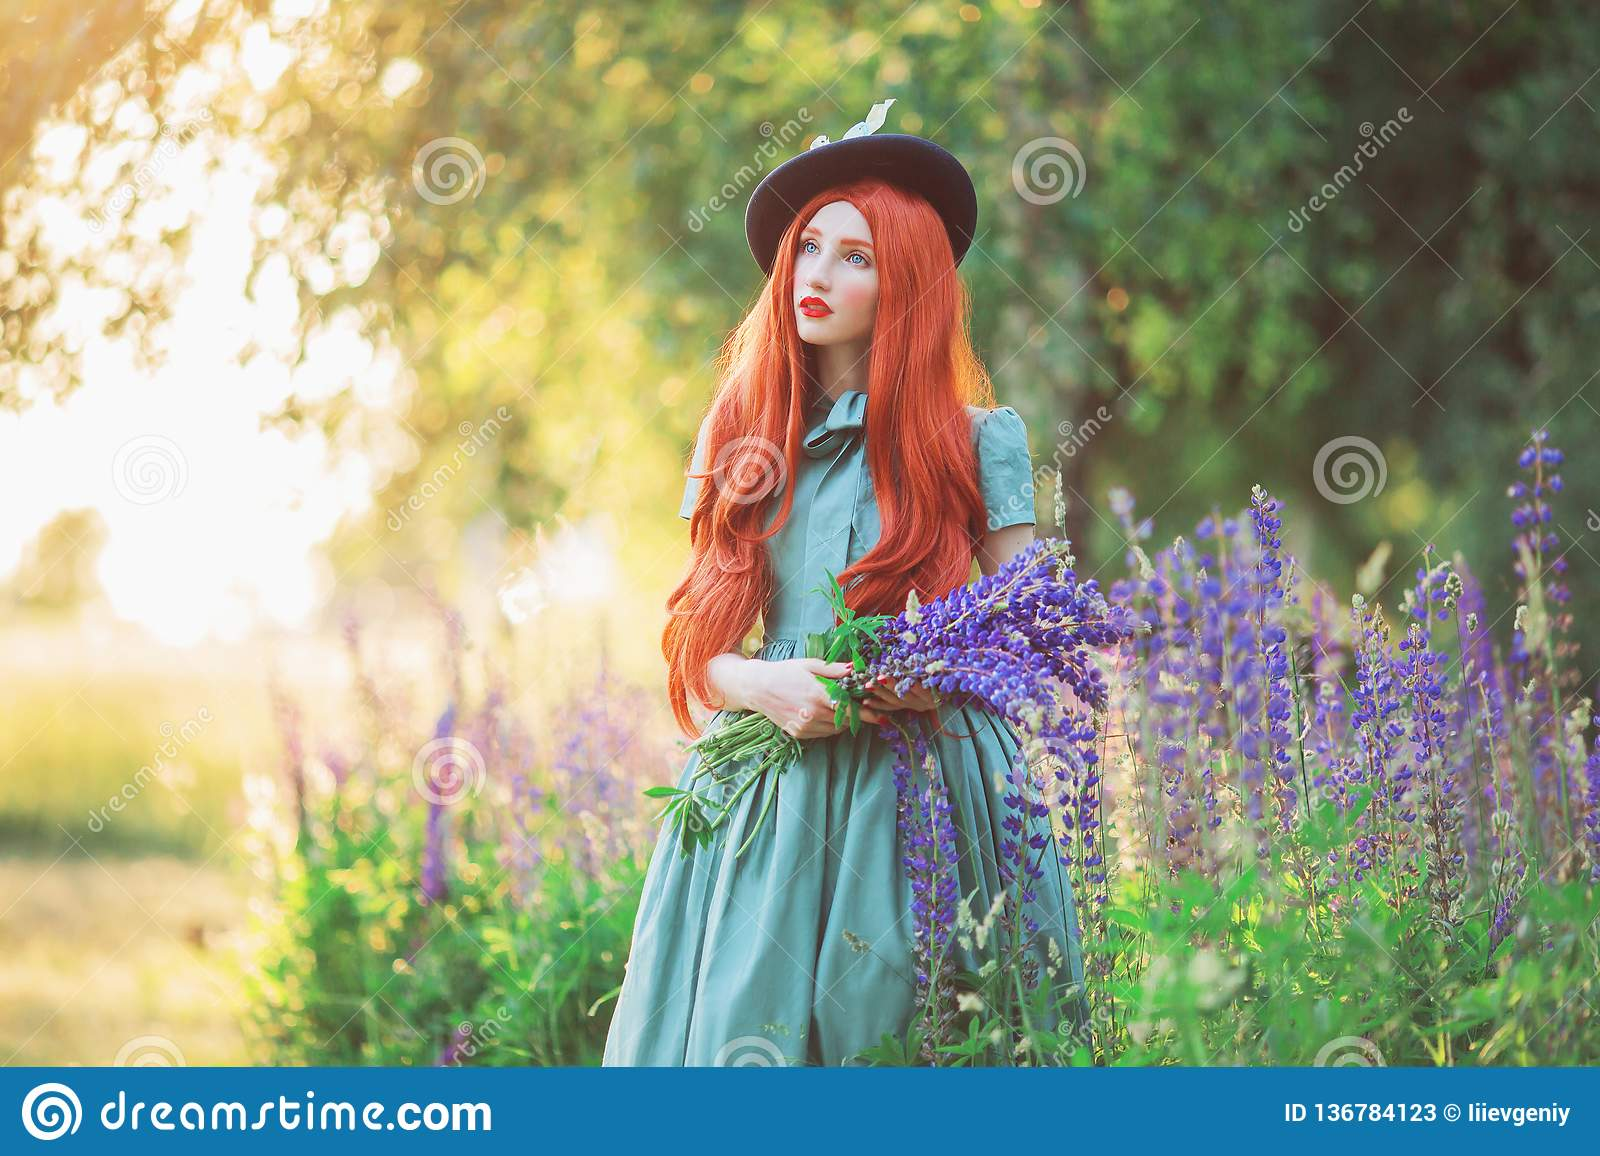 Valentine Day background. Spring blooming lupine flower garden. Perfect  lady with red lips in dress. Summer hat. Perfect floral wall. a0211e43e8ed